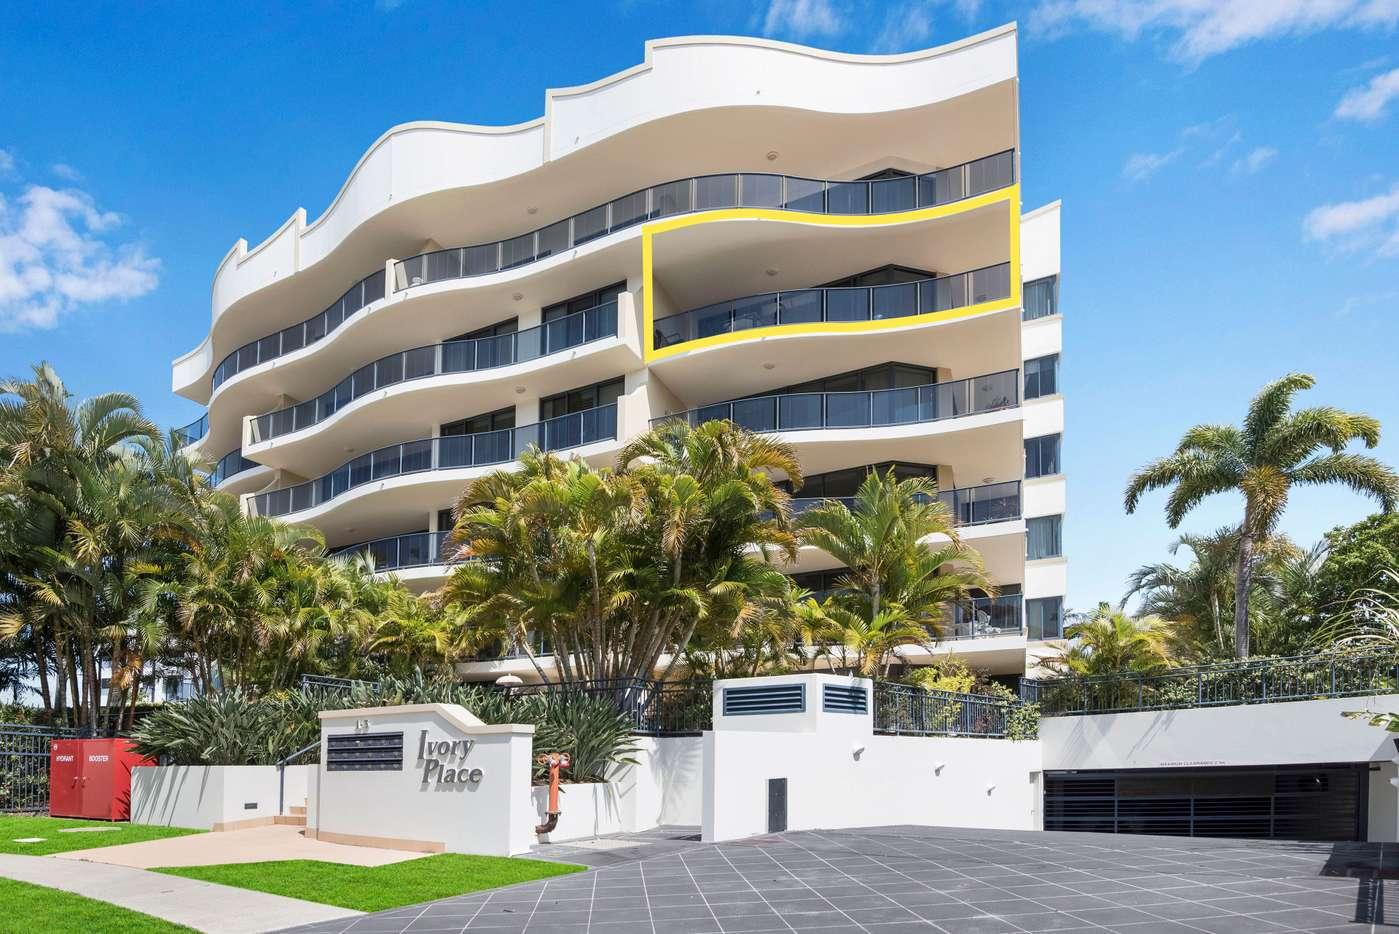 Main view of Homely apartment listing, 13/1-3 Ivory Place, Tweed Heads, NSW 2485